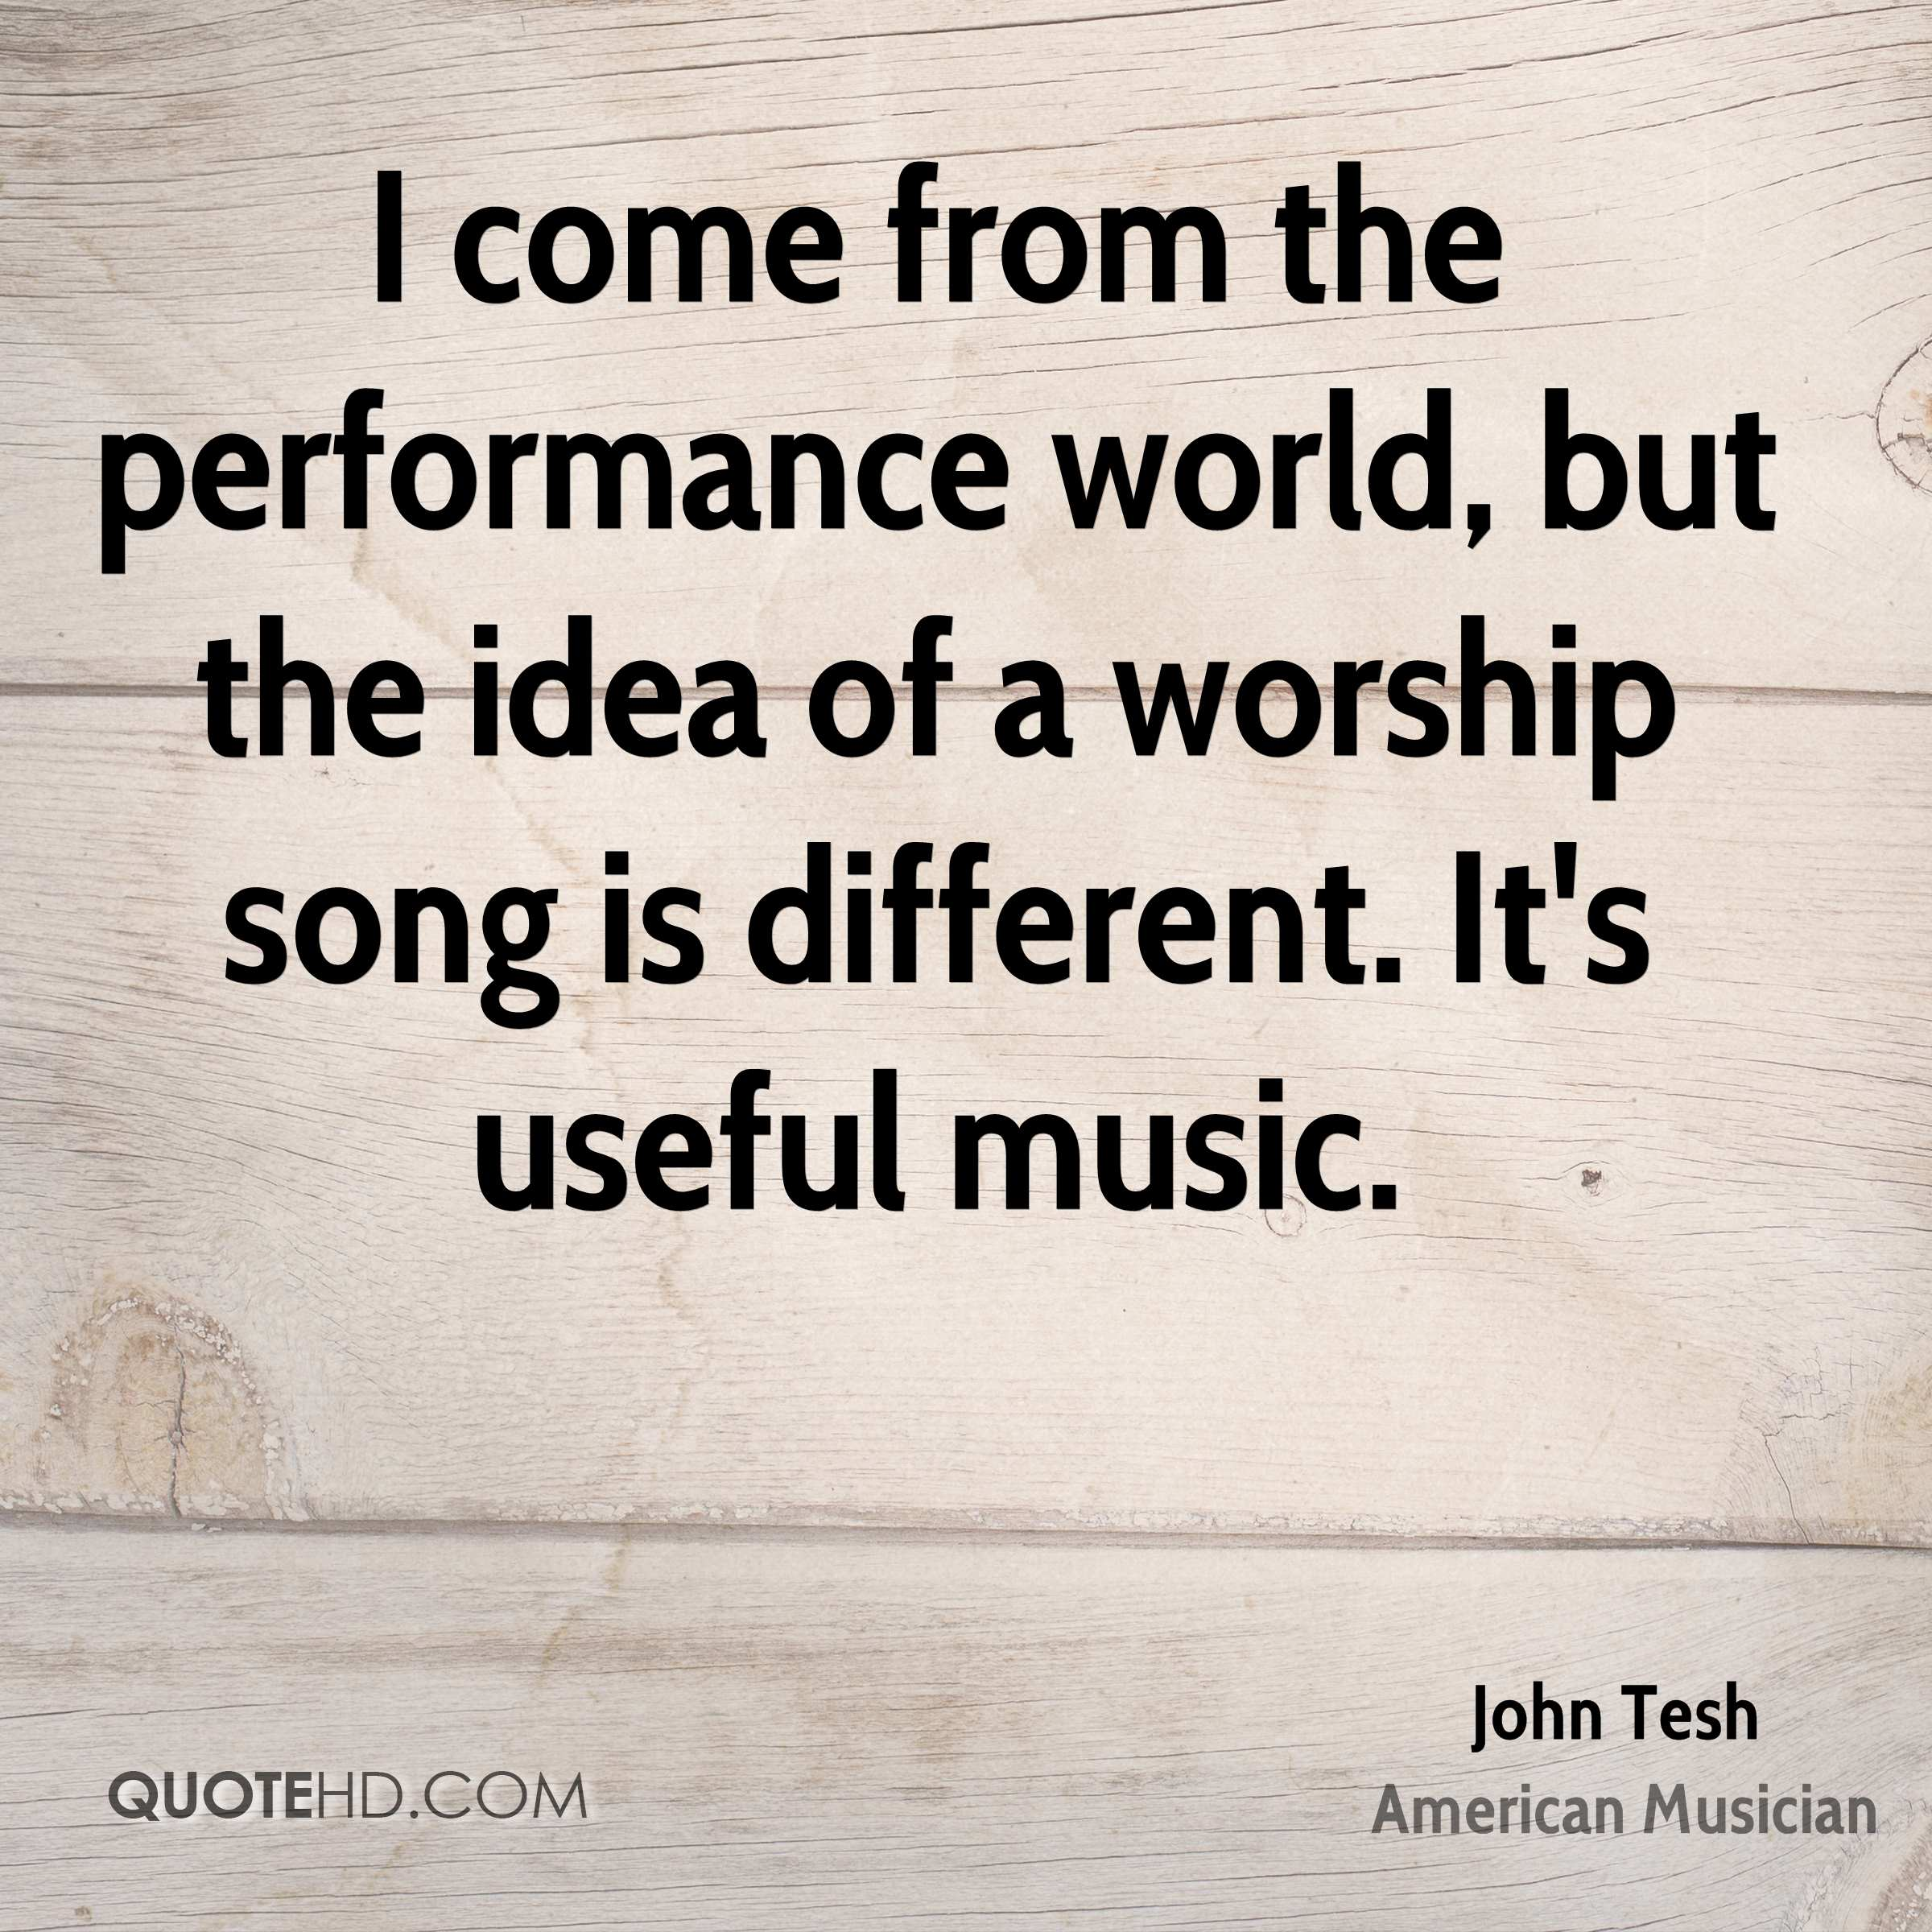 I come from the performance world, but the idea of a worship song is different. It's useful music.